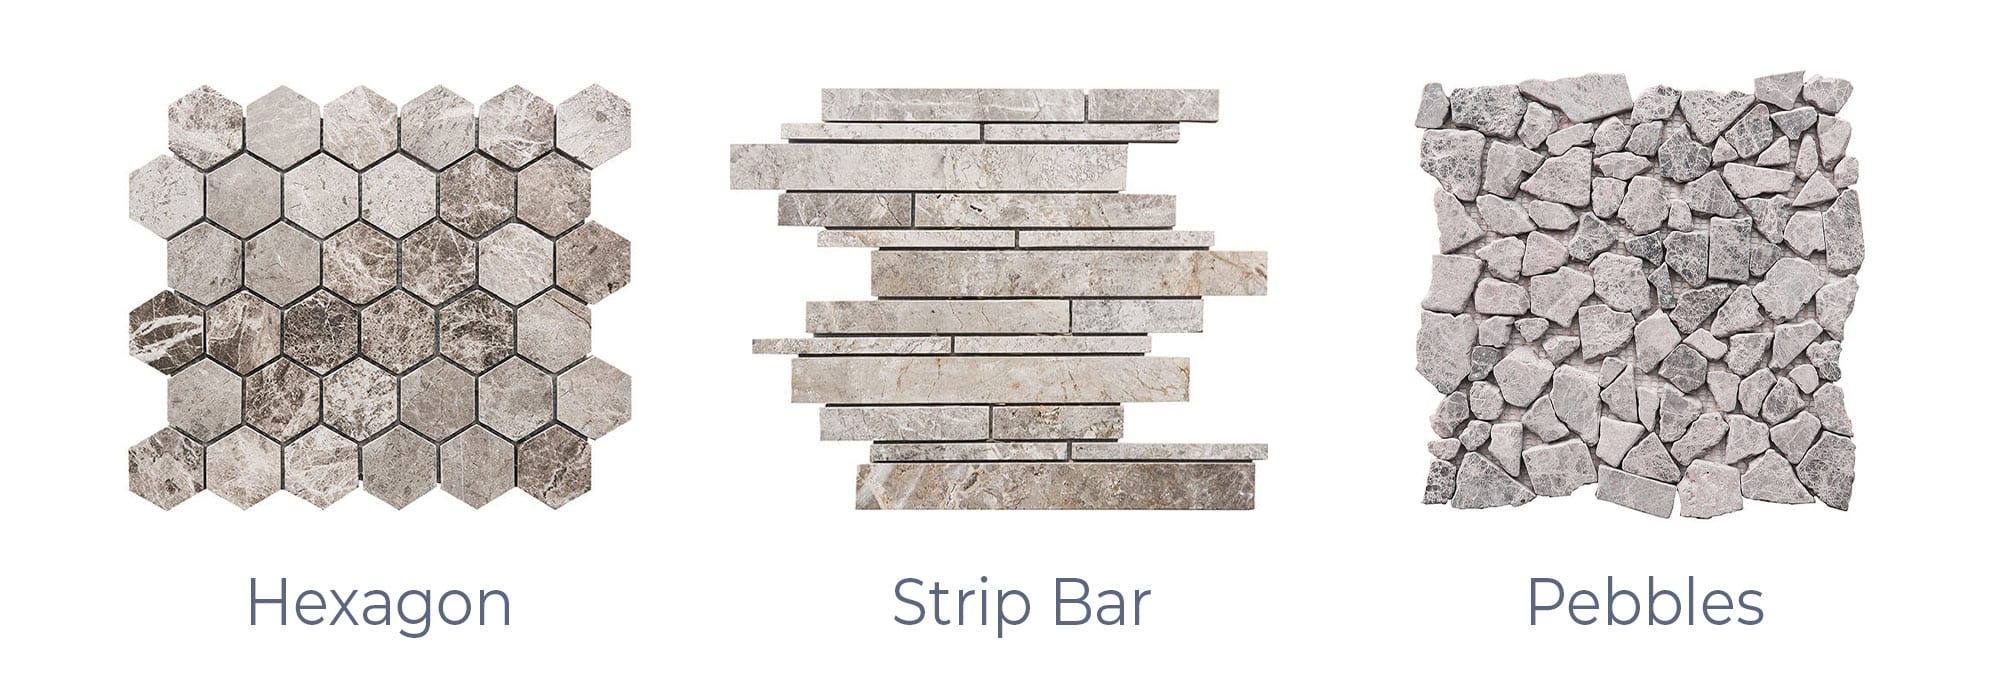 Stoneline-Group-Tundra-Grey-Travertine-Marble-Collection-Marble-Mosaic-Hexagon-Strip-Bar-Pebbles-Pictures